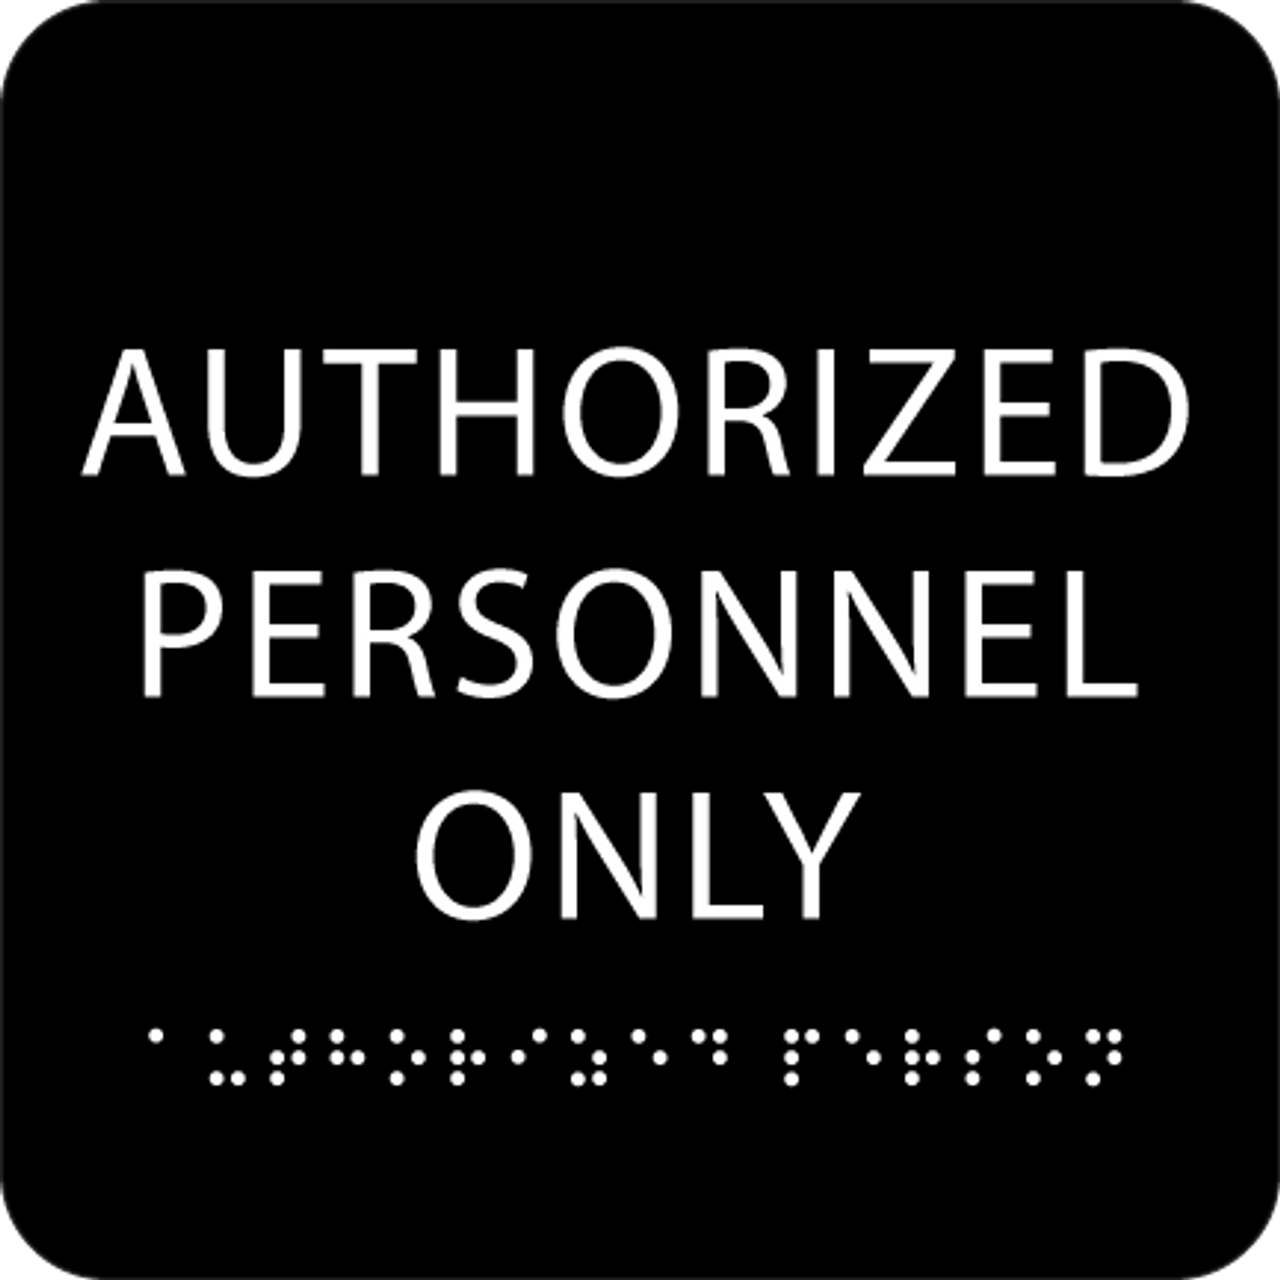 Black Authorized Personnel Only ADA Sign